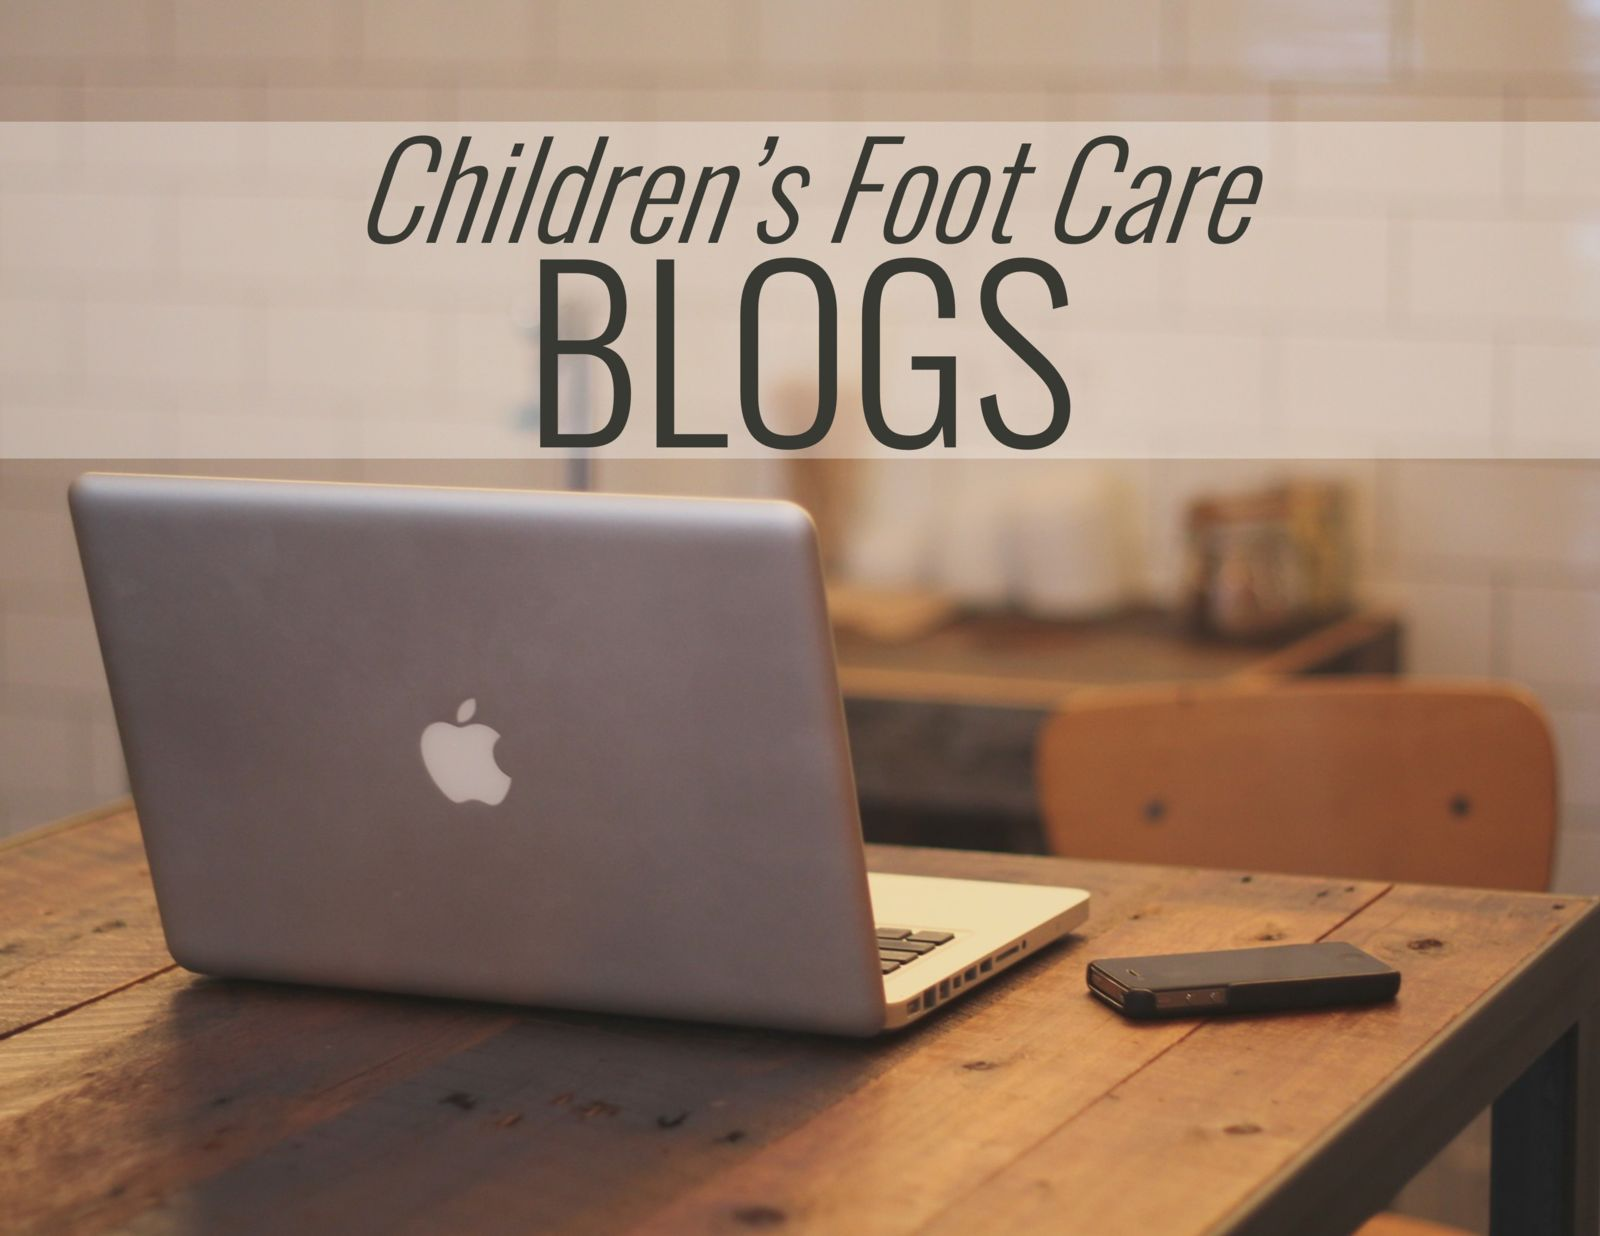 computer on a desk and the words: Children's Foot Care Blogs